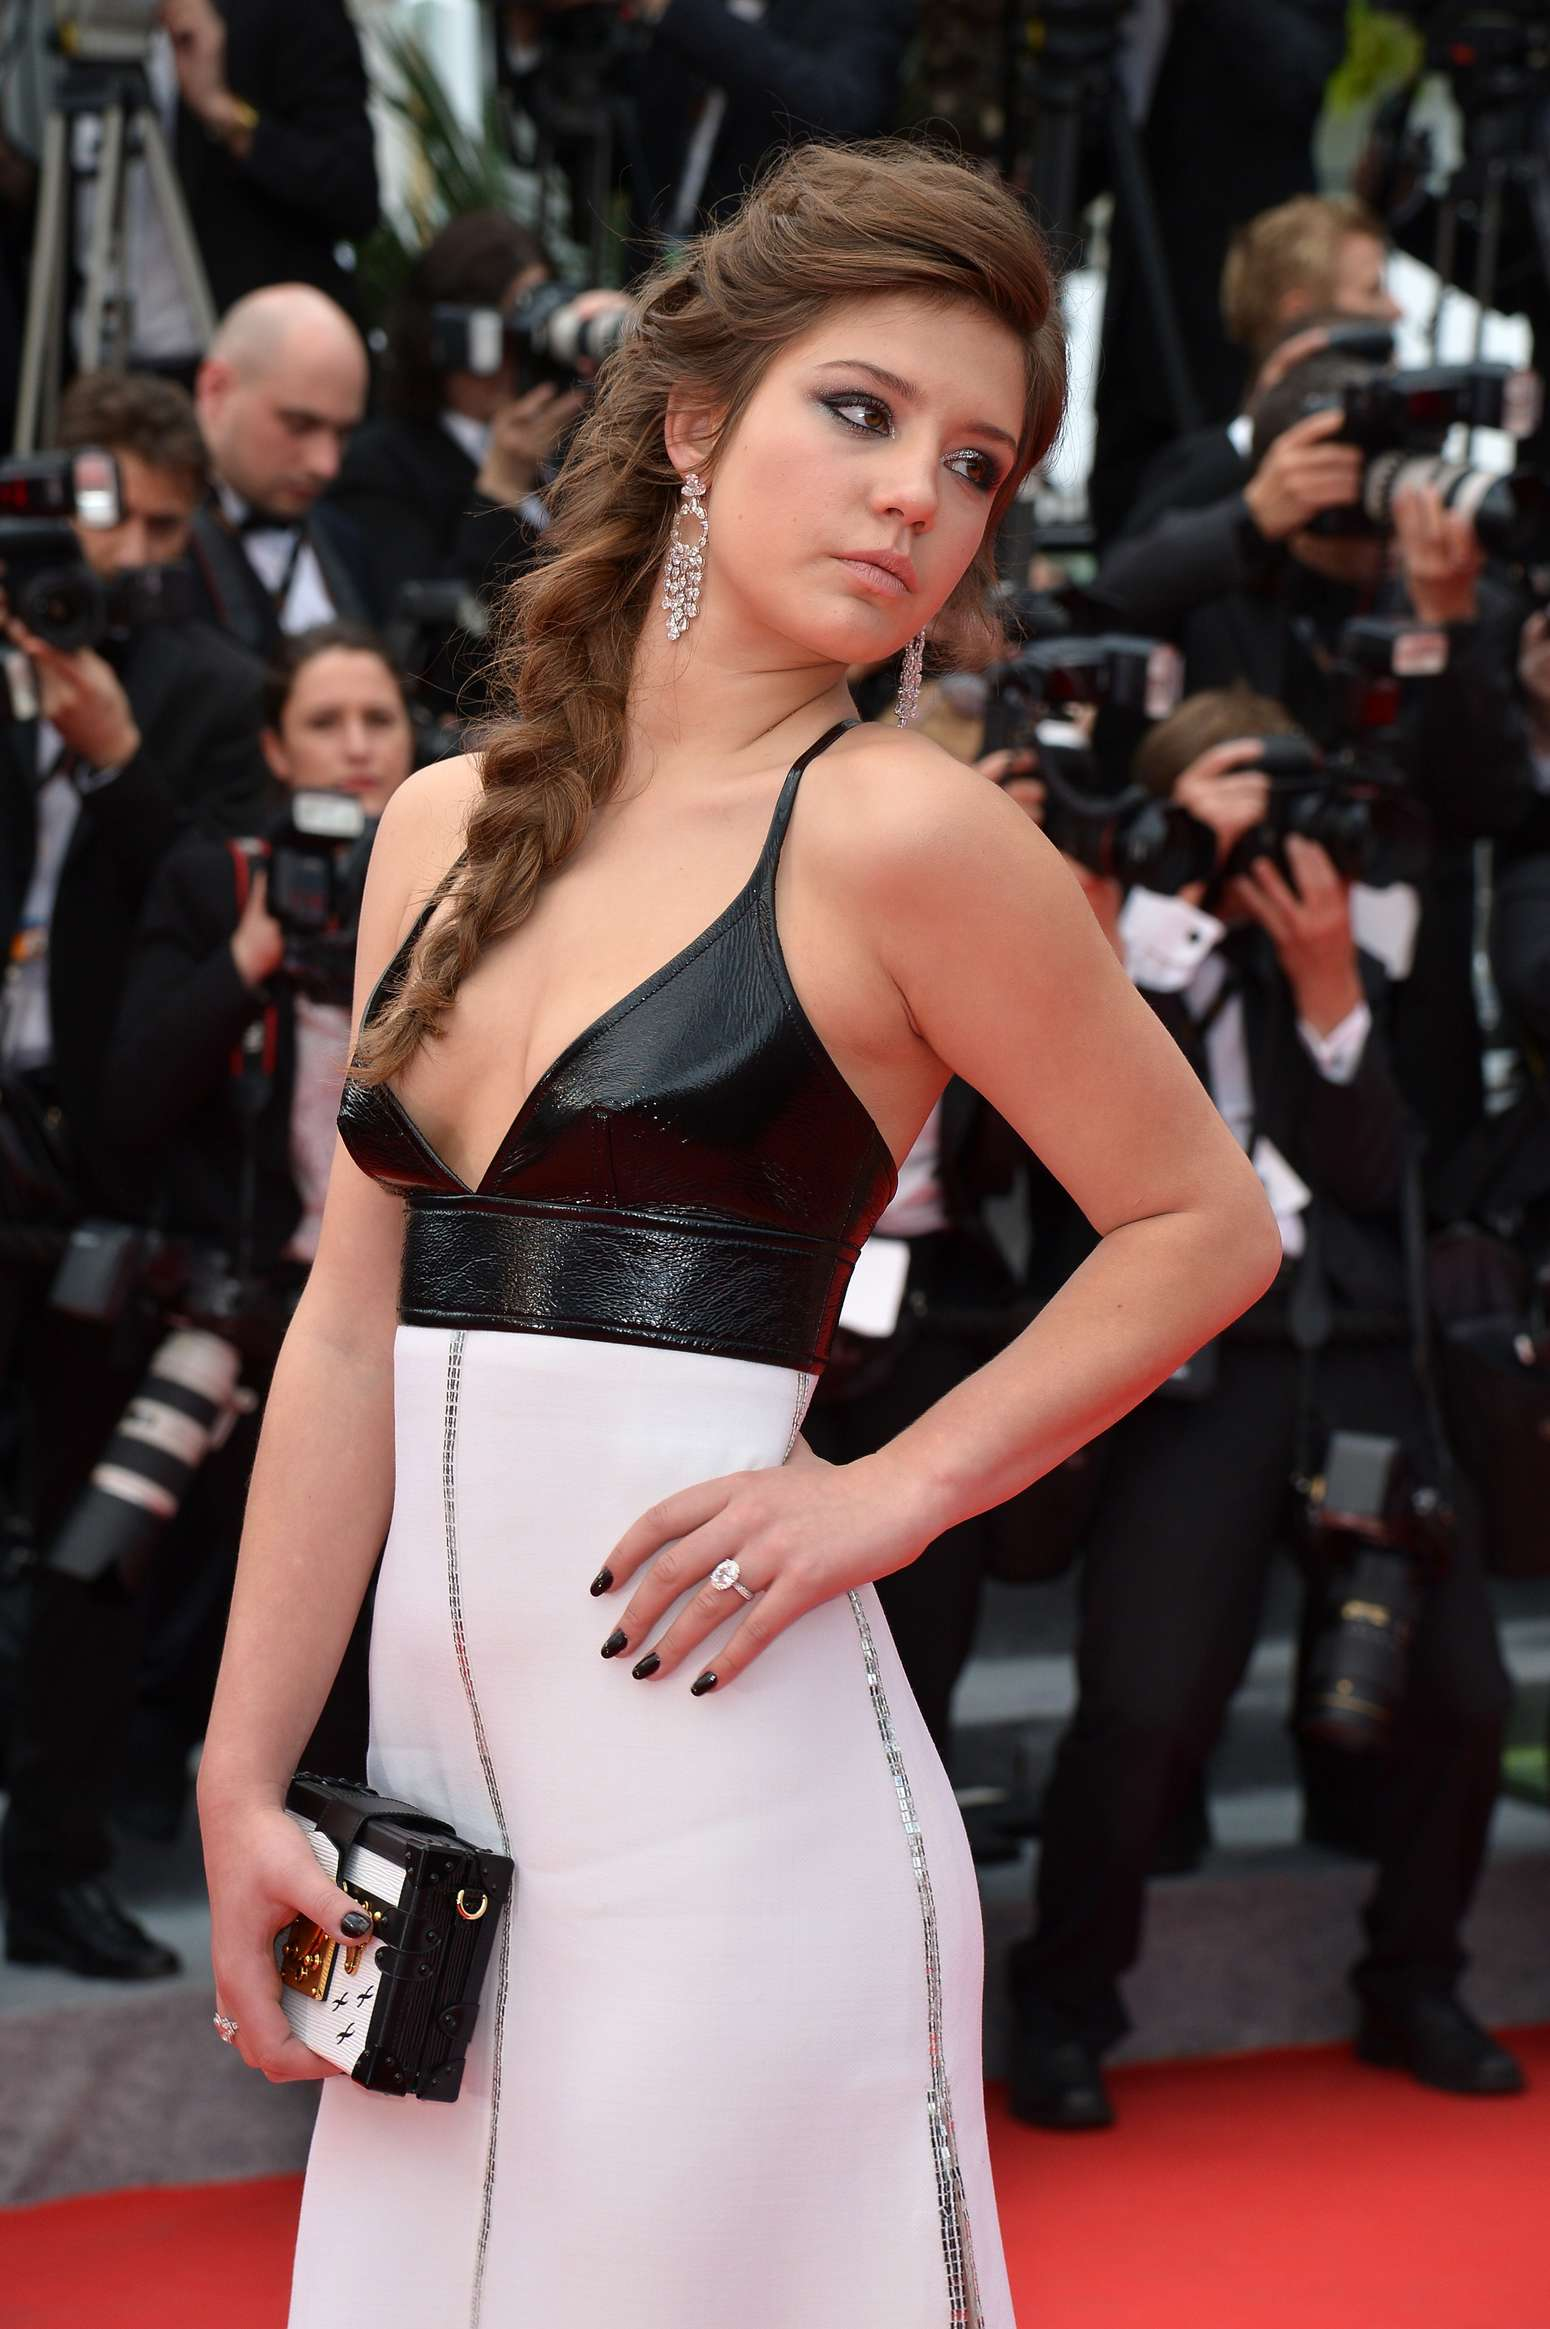 Adele Exarchopoulos 346 SAWFIRST